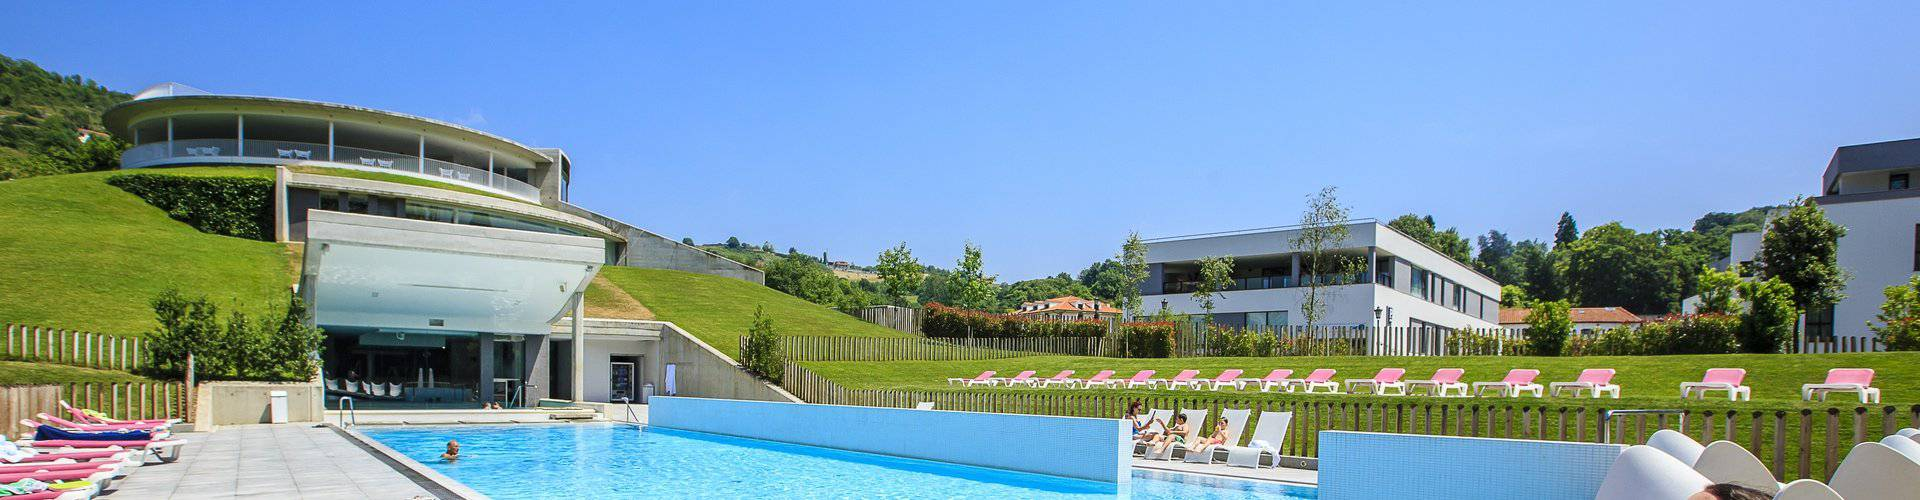 Blau hotels & resorts - Asturias -